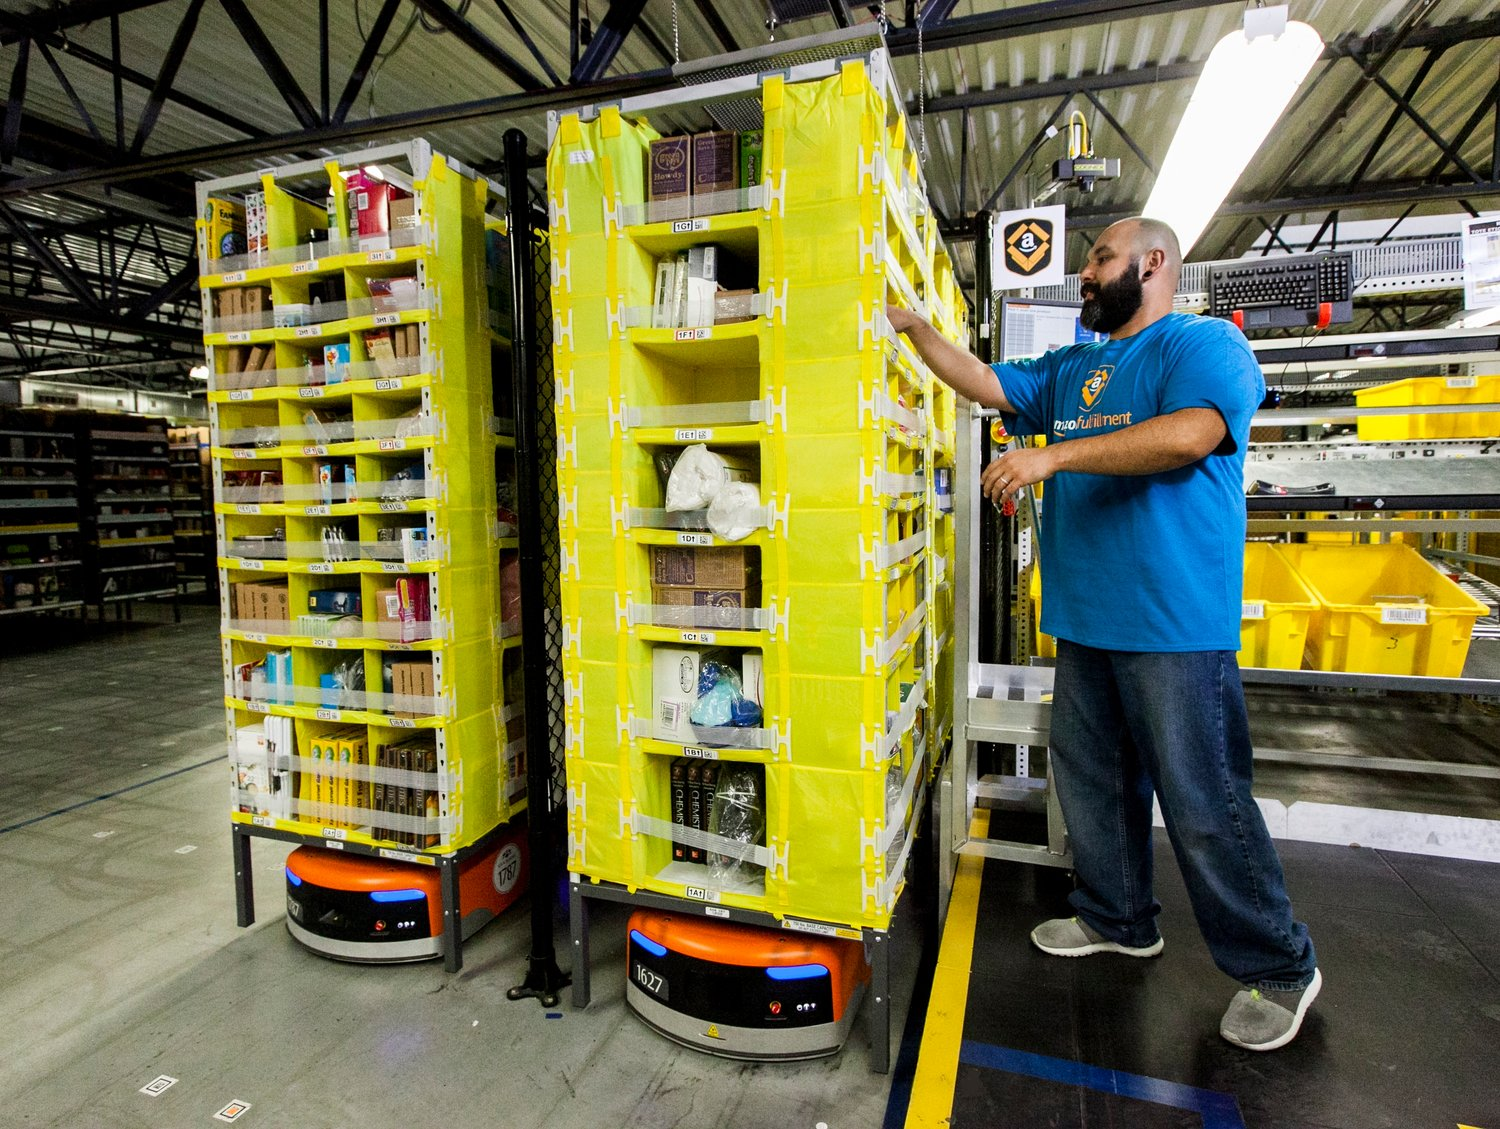 Amazon's move into Shirley will create warehouse and delivery jobs.